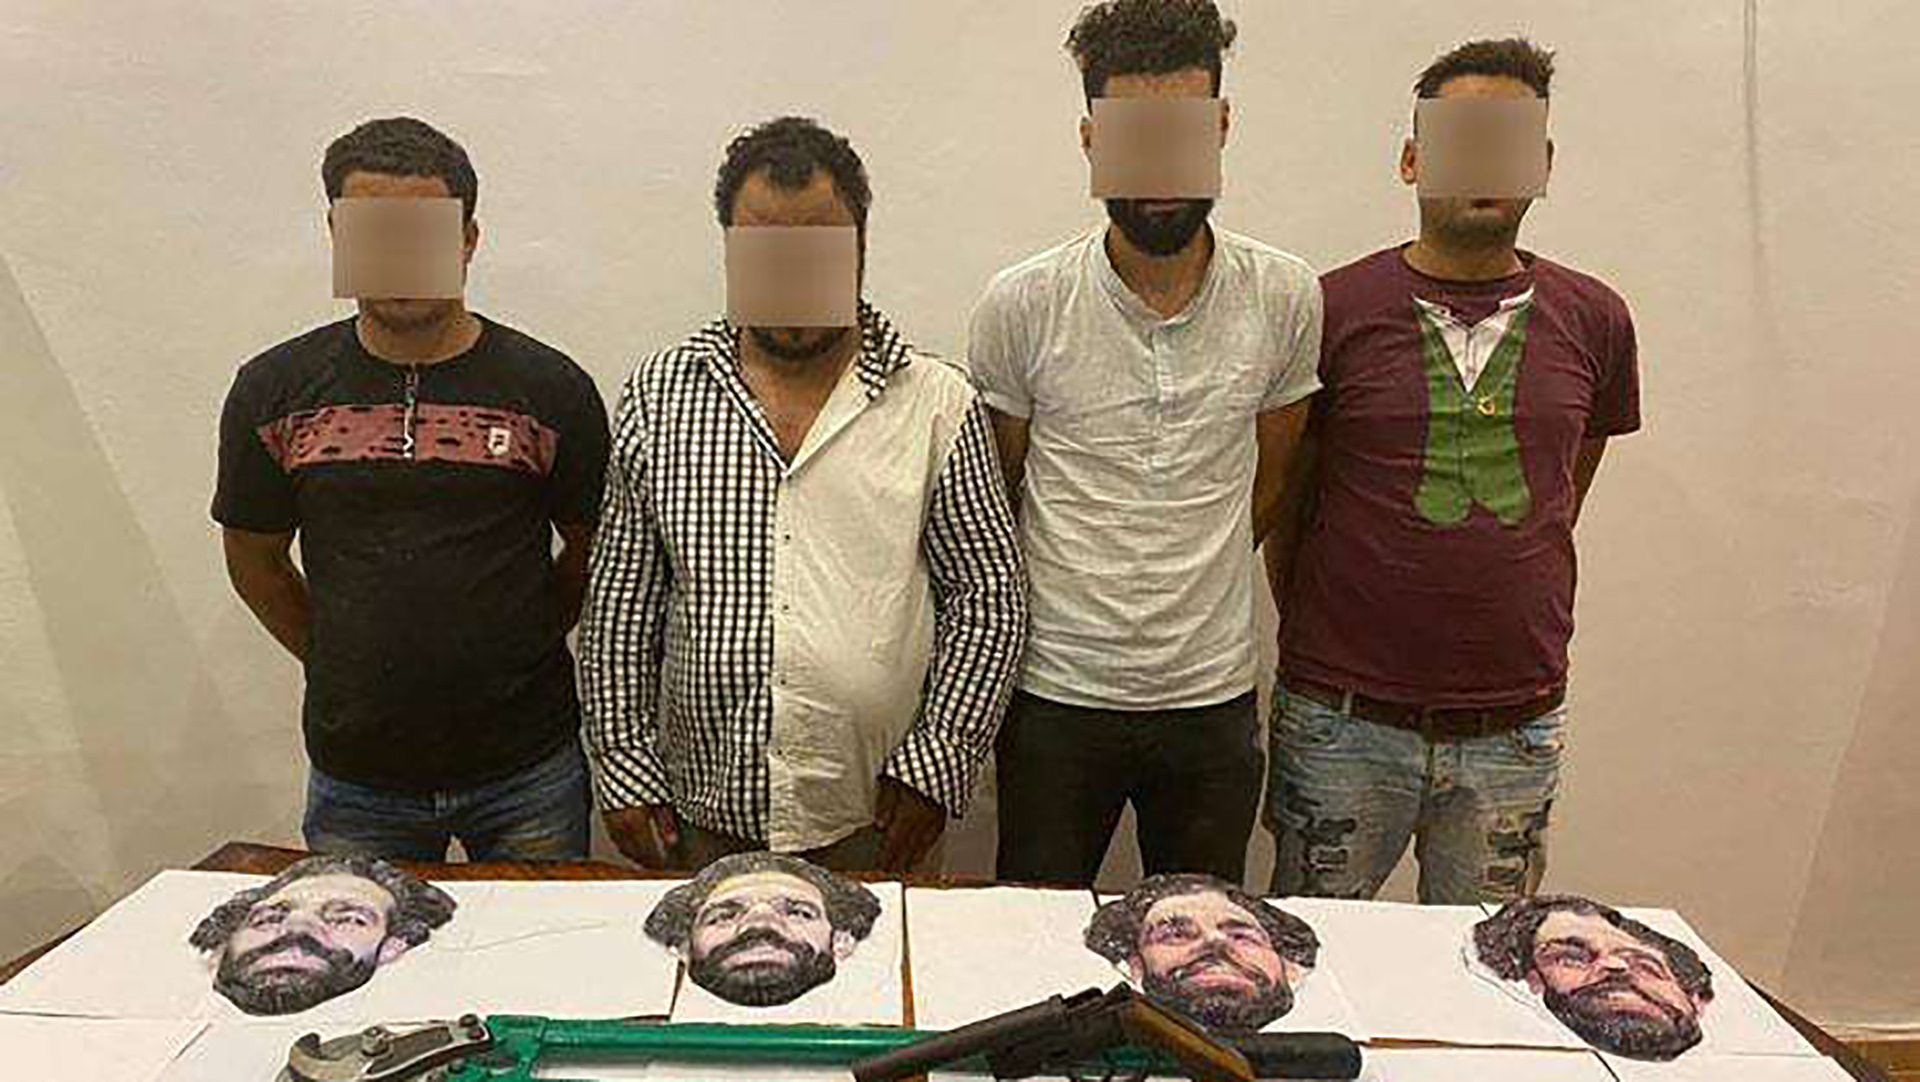 Salah mask-wearing robbers caught by Egyptian police